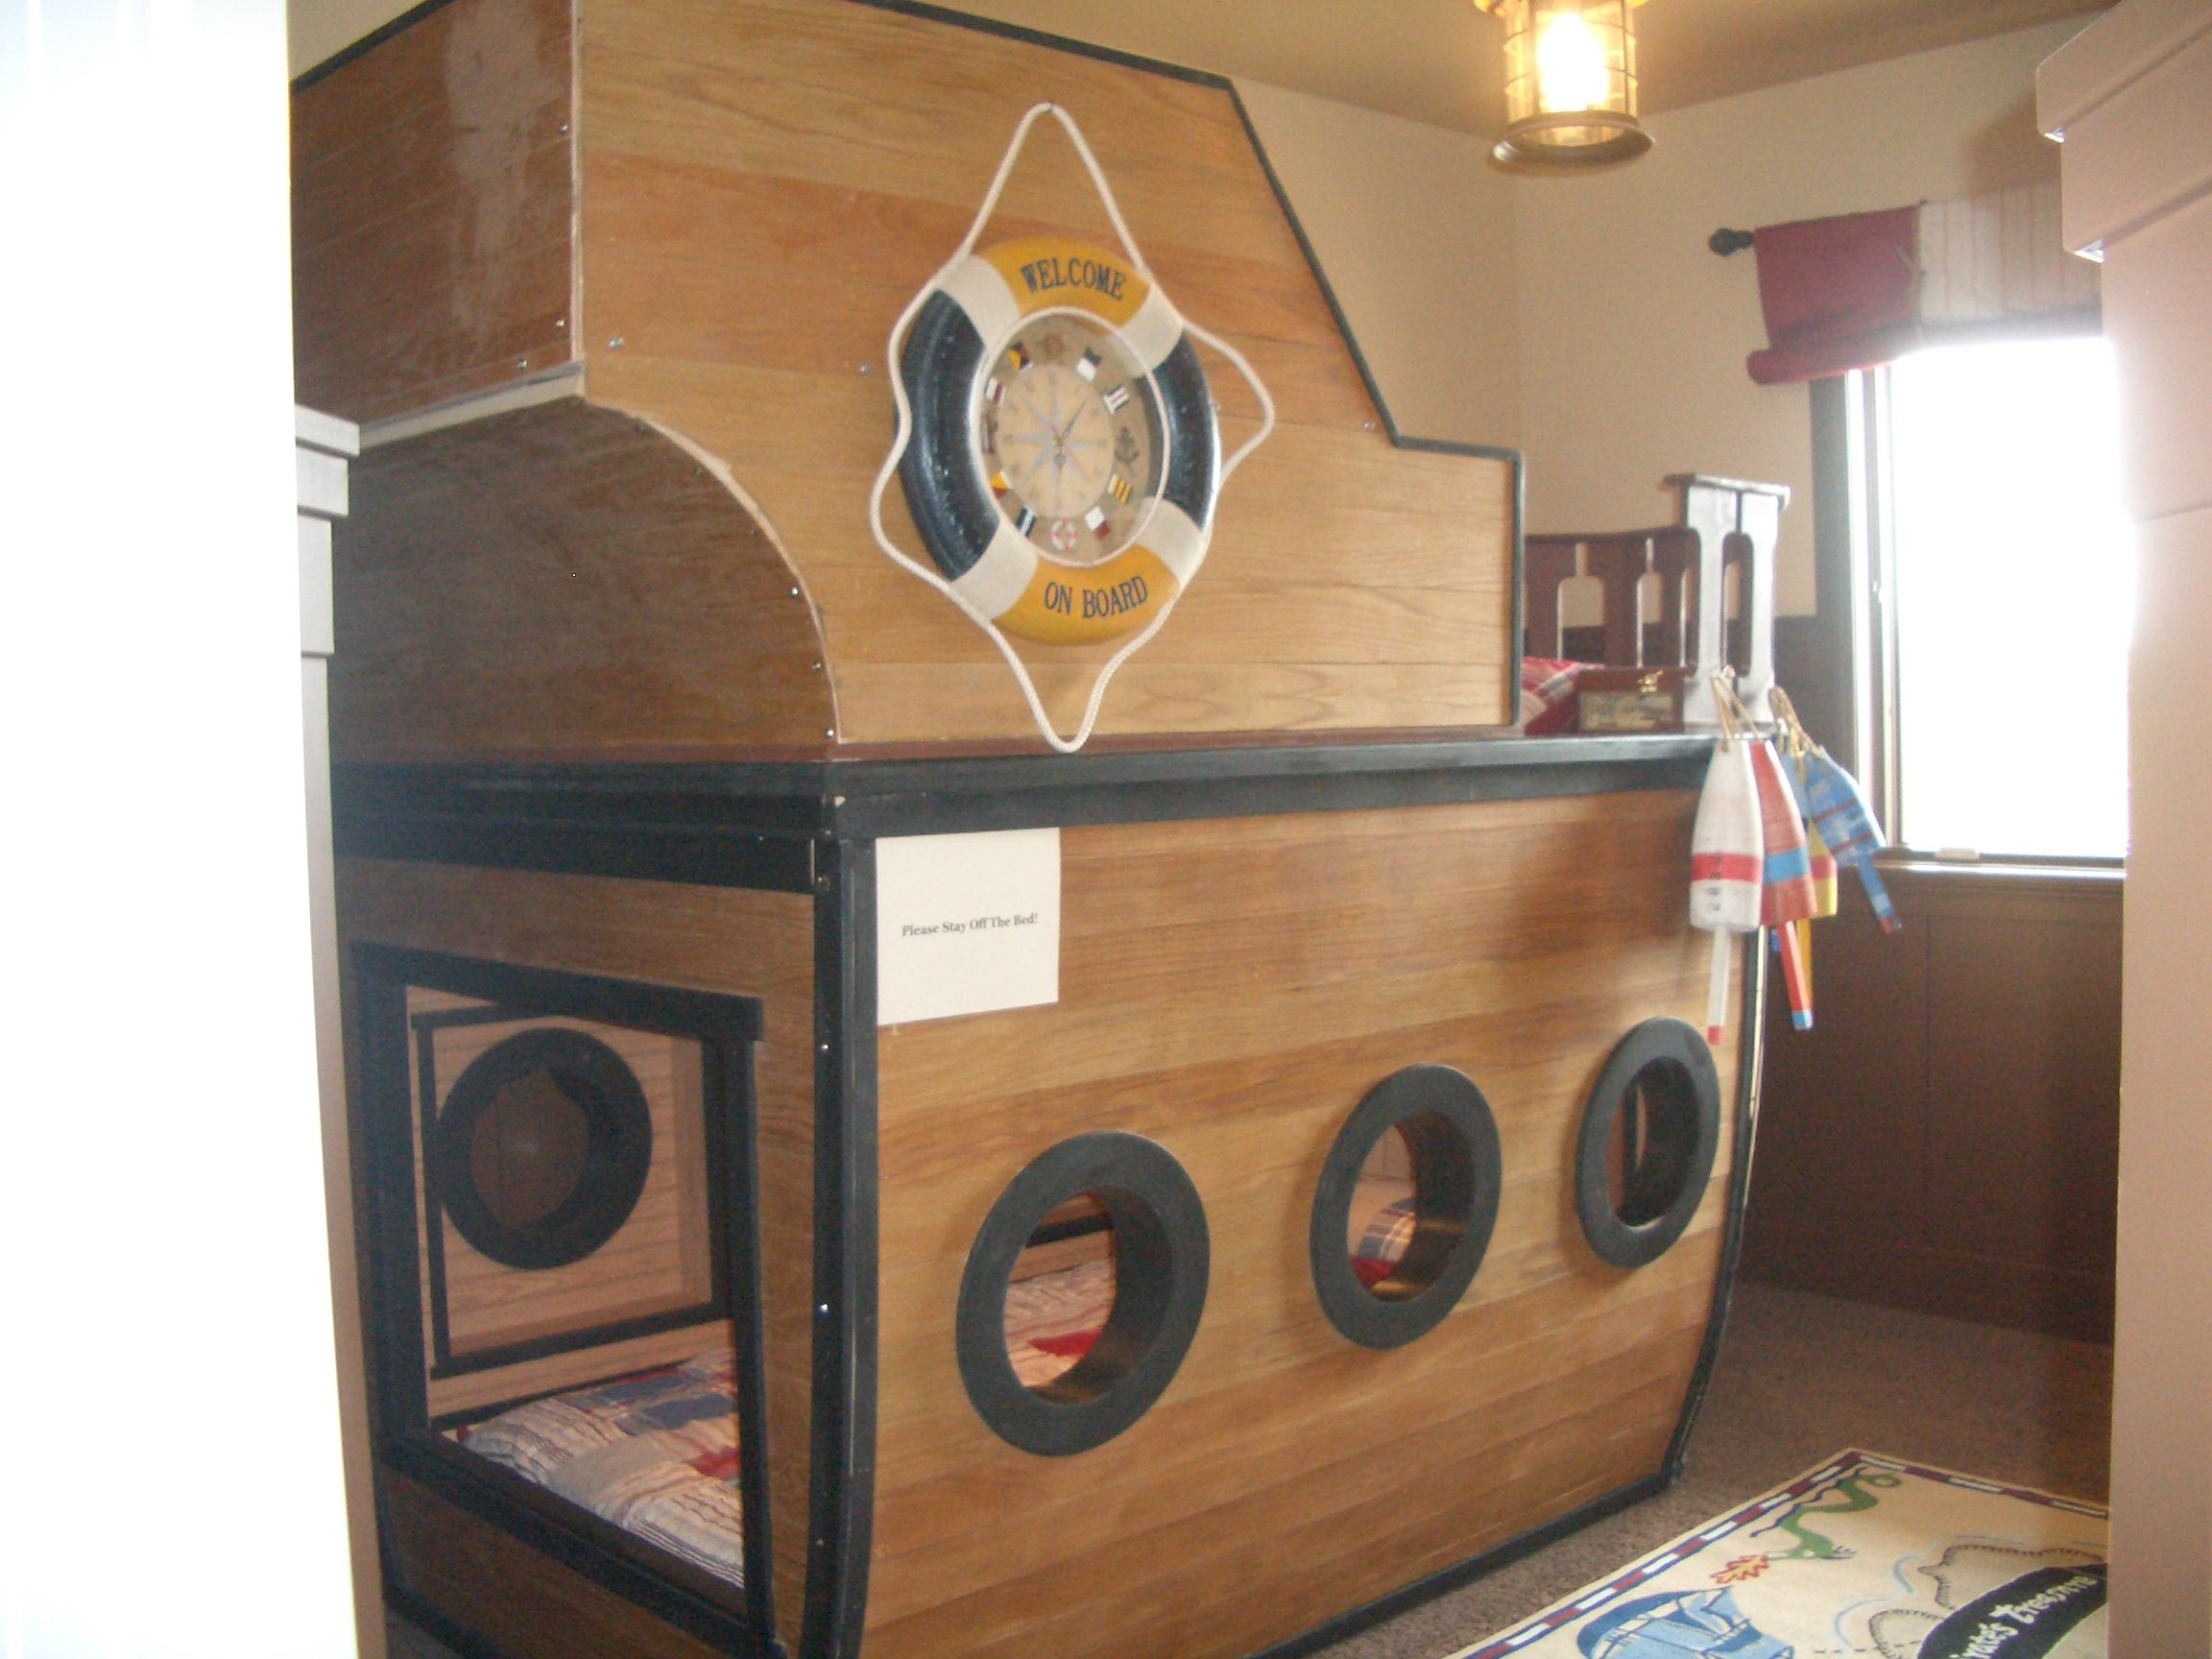 Pirate Bedroom Furniture 22 Curated Pirate Theme Bedroom Ideas By Craftydana0013 Boats